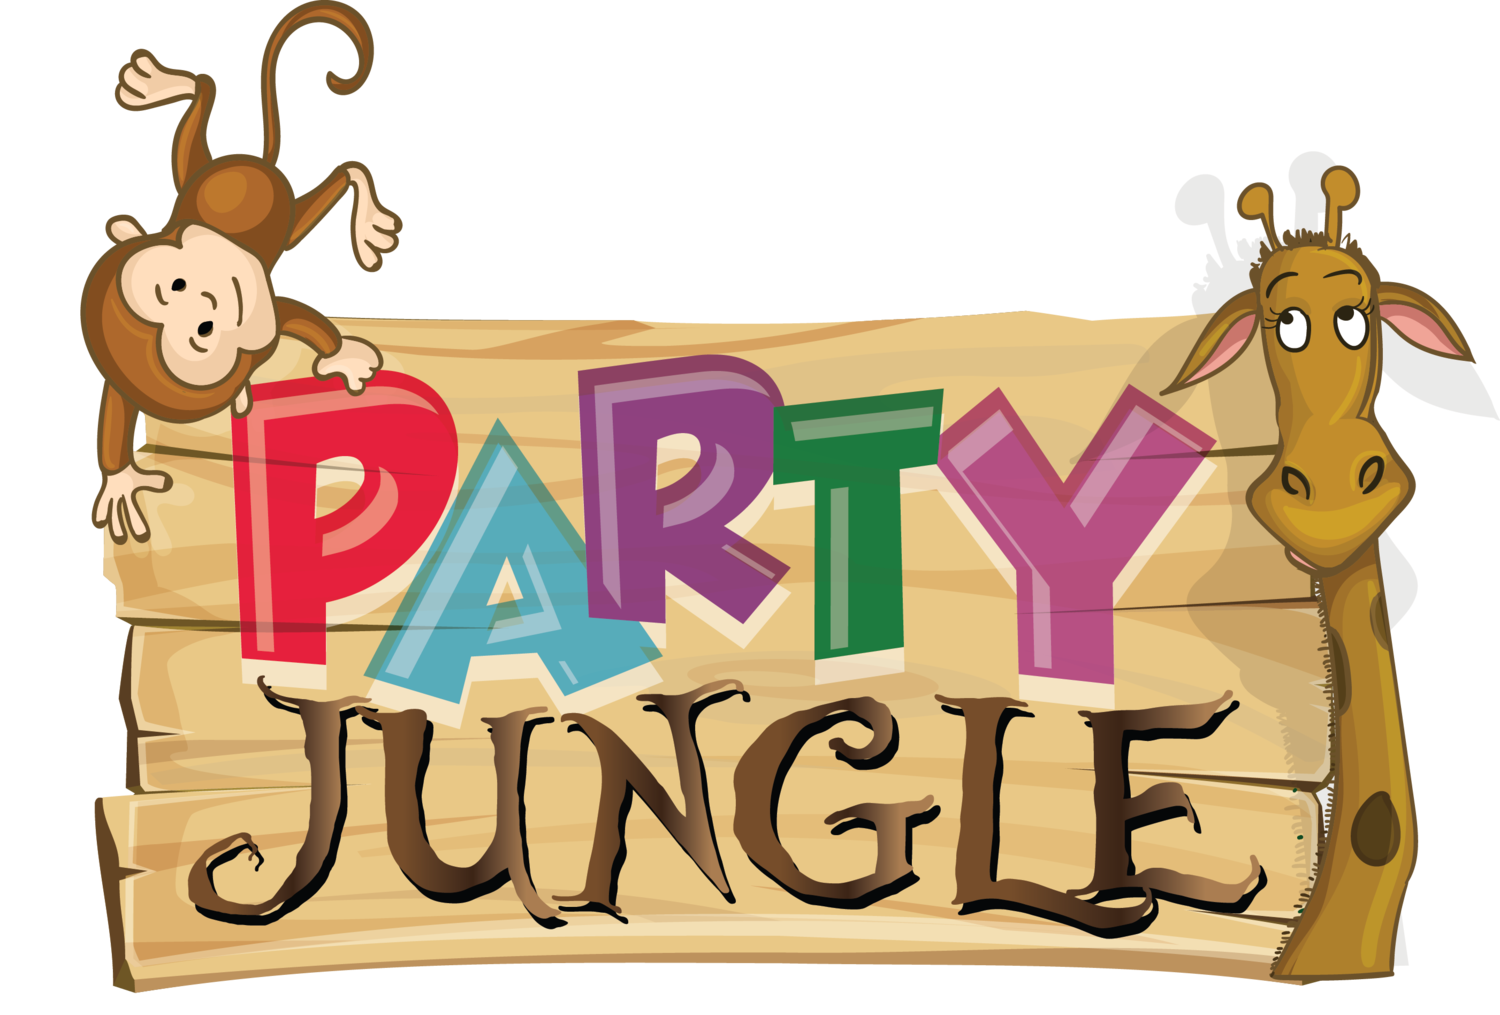 Party Jungle